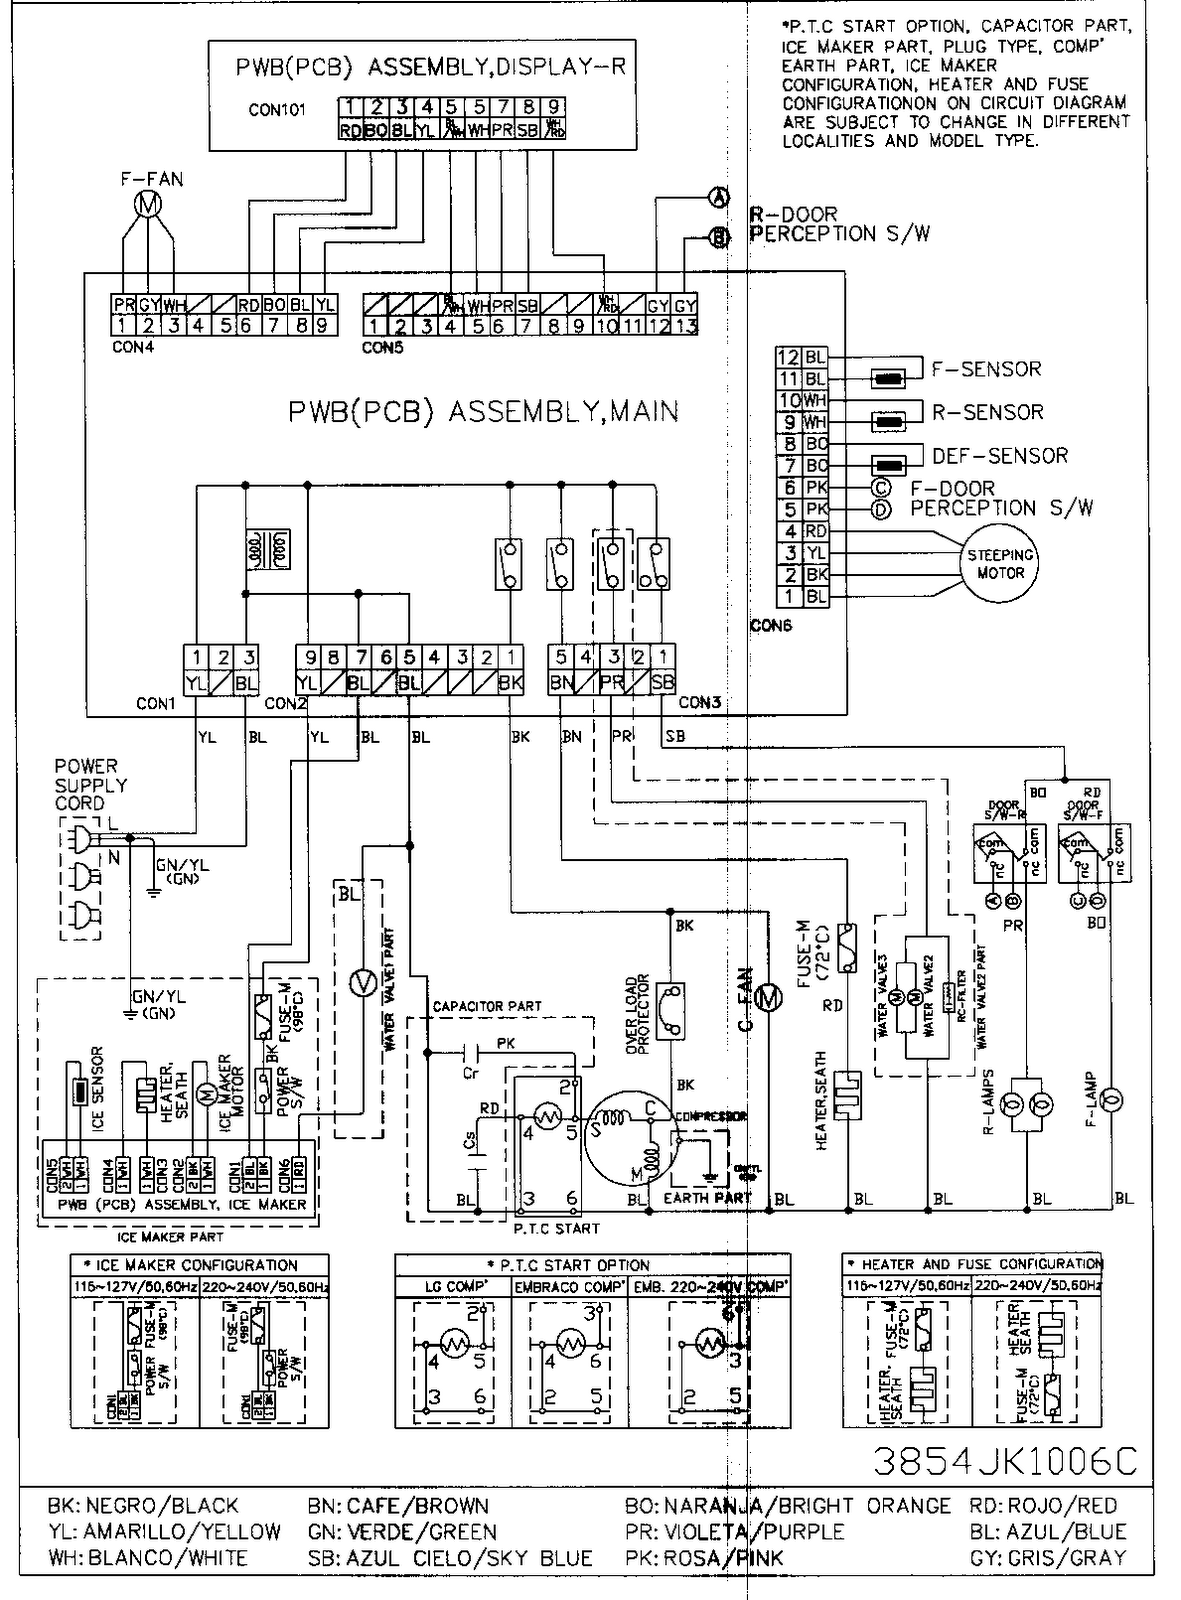 carrier 30gb chiller wiring diagram allroad fuse diagram integra, Wiring diagram